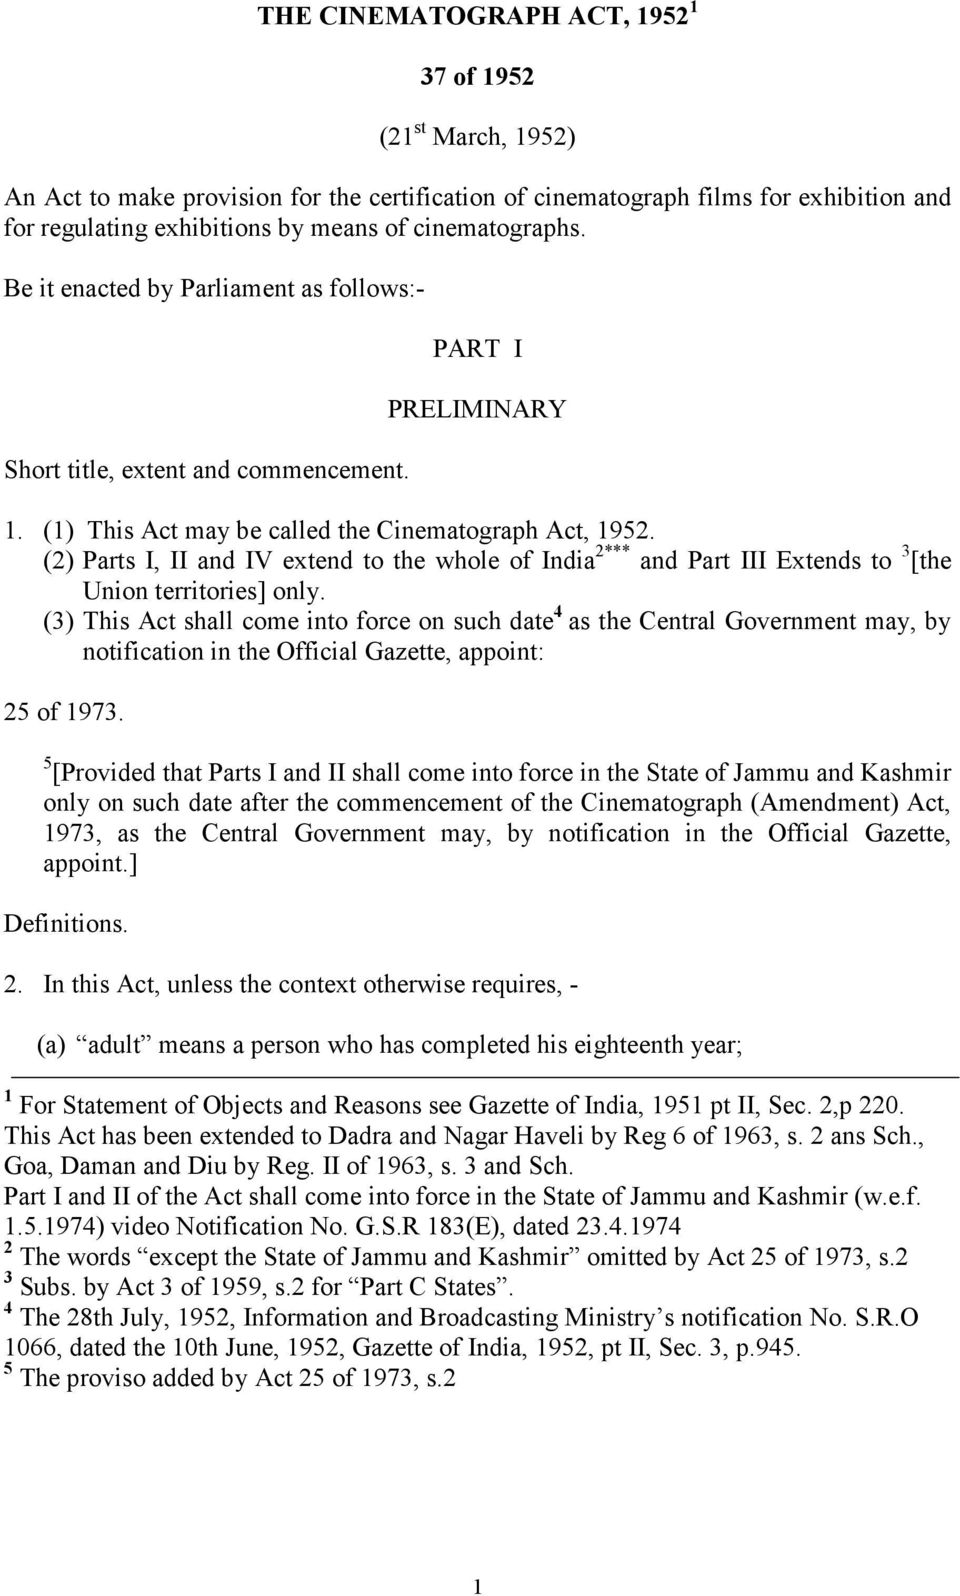 (2) Parts I, II and IV extend to the whole of India 2*** and Part III Extends to 3 [the Union territories] only.